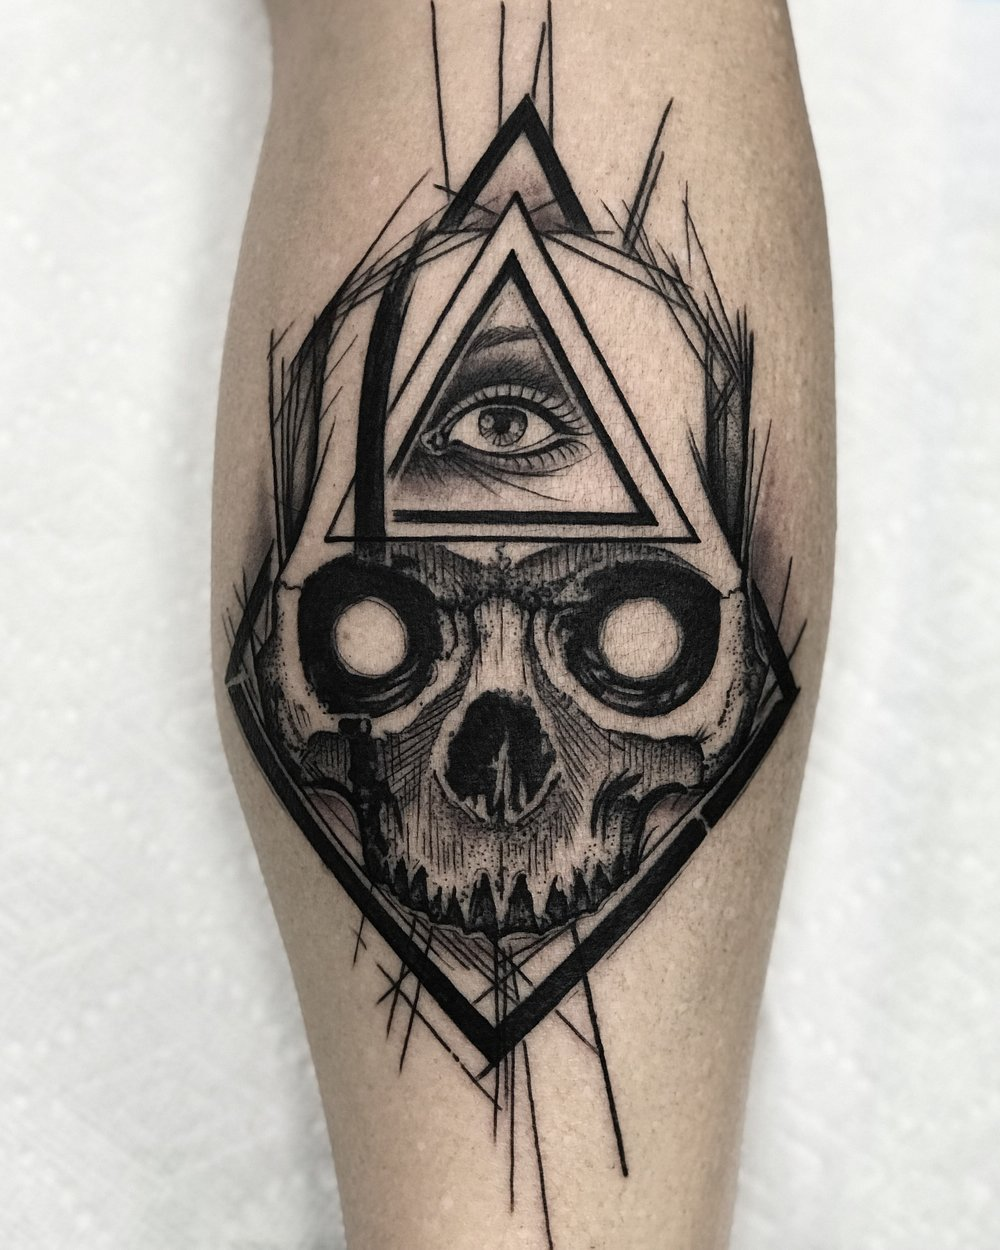 Blackwork Skull Tattoo by David Mushaney